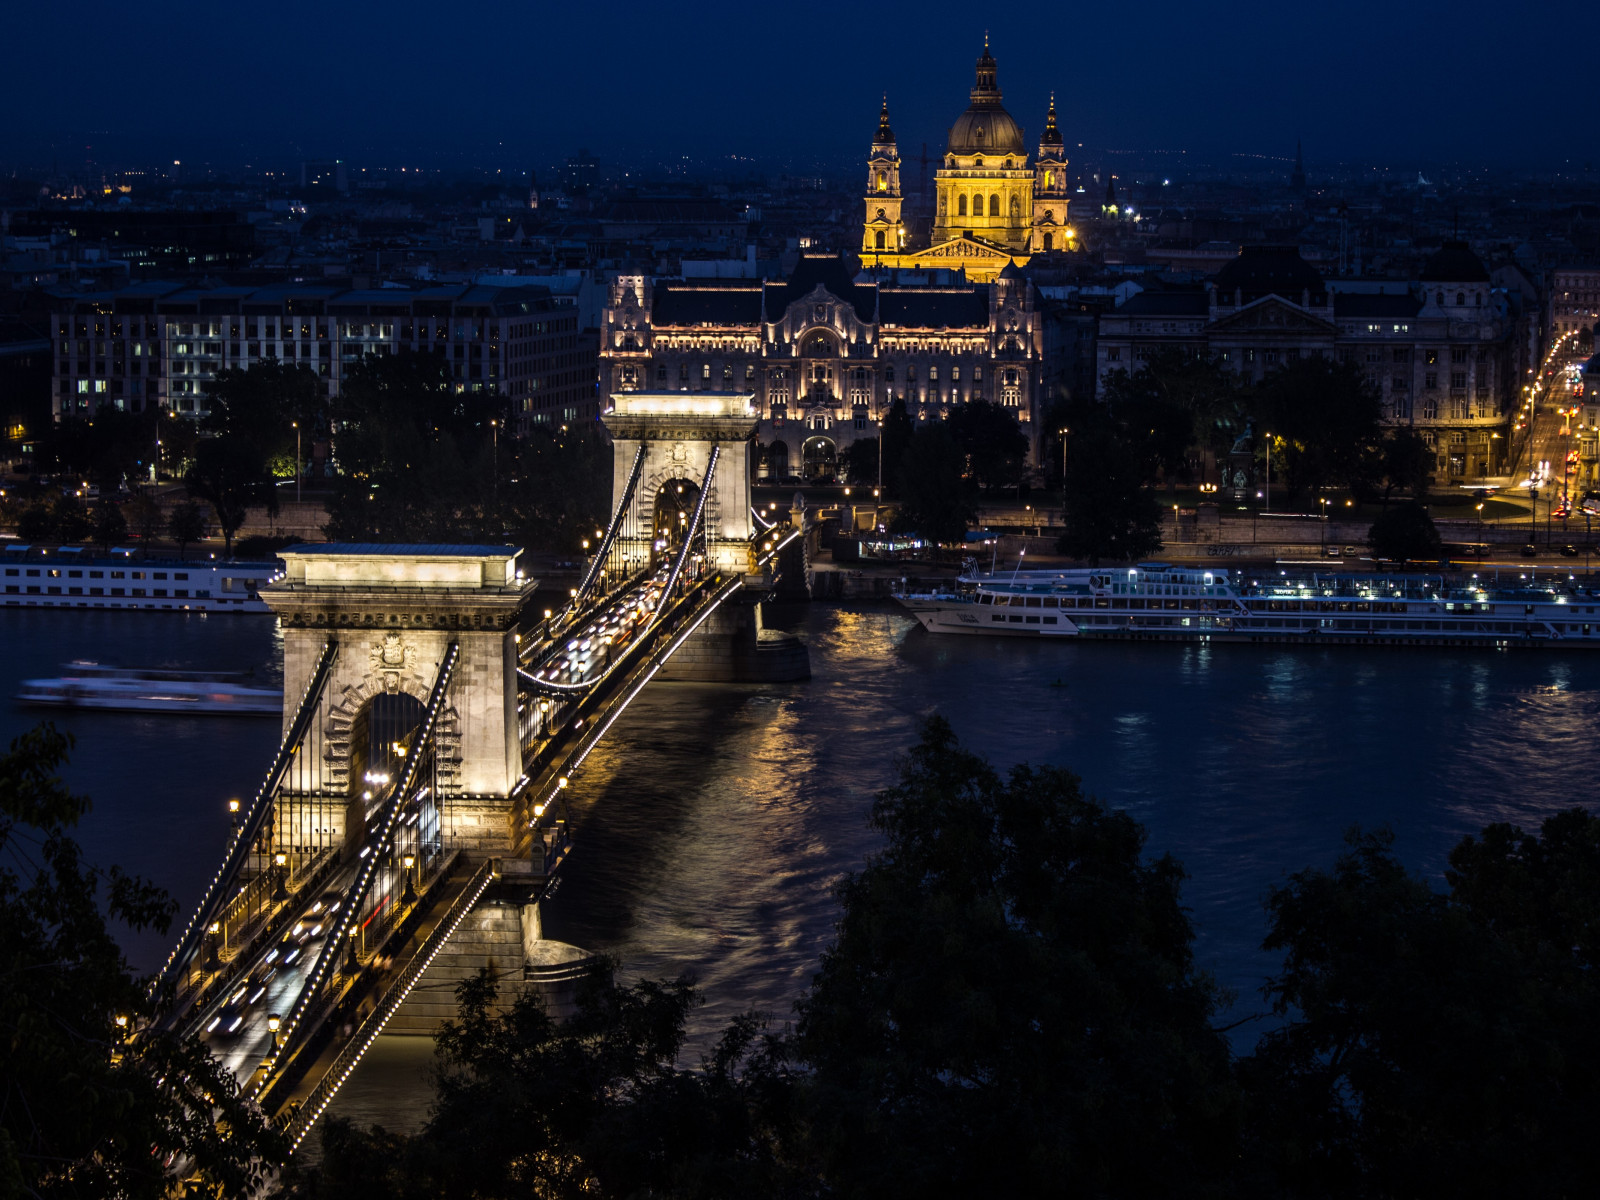 Budapest by Night wallpaper 1600x1200